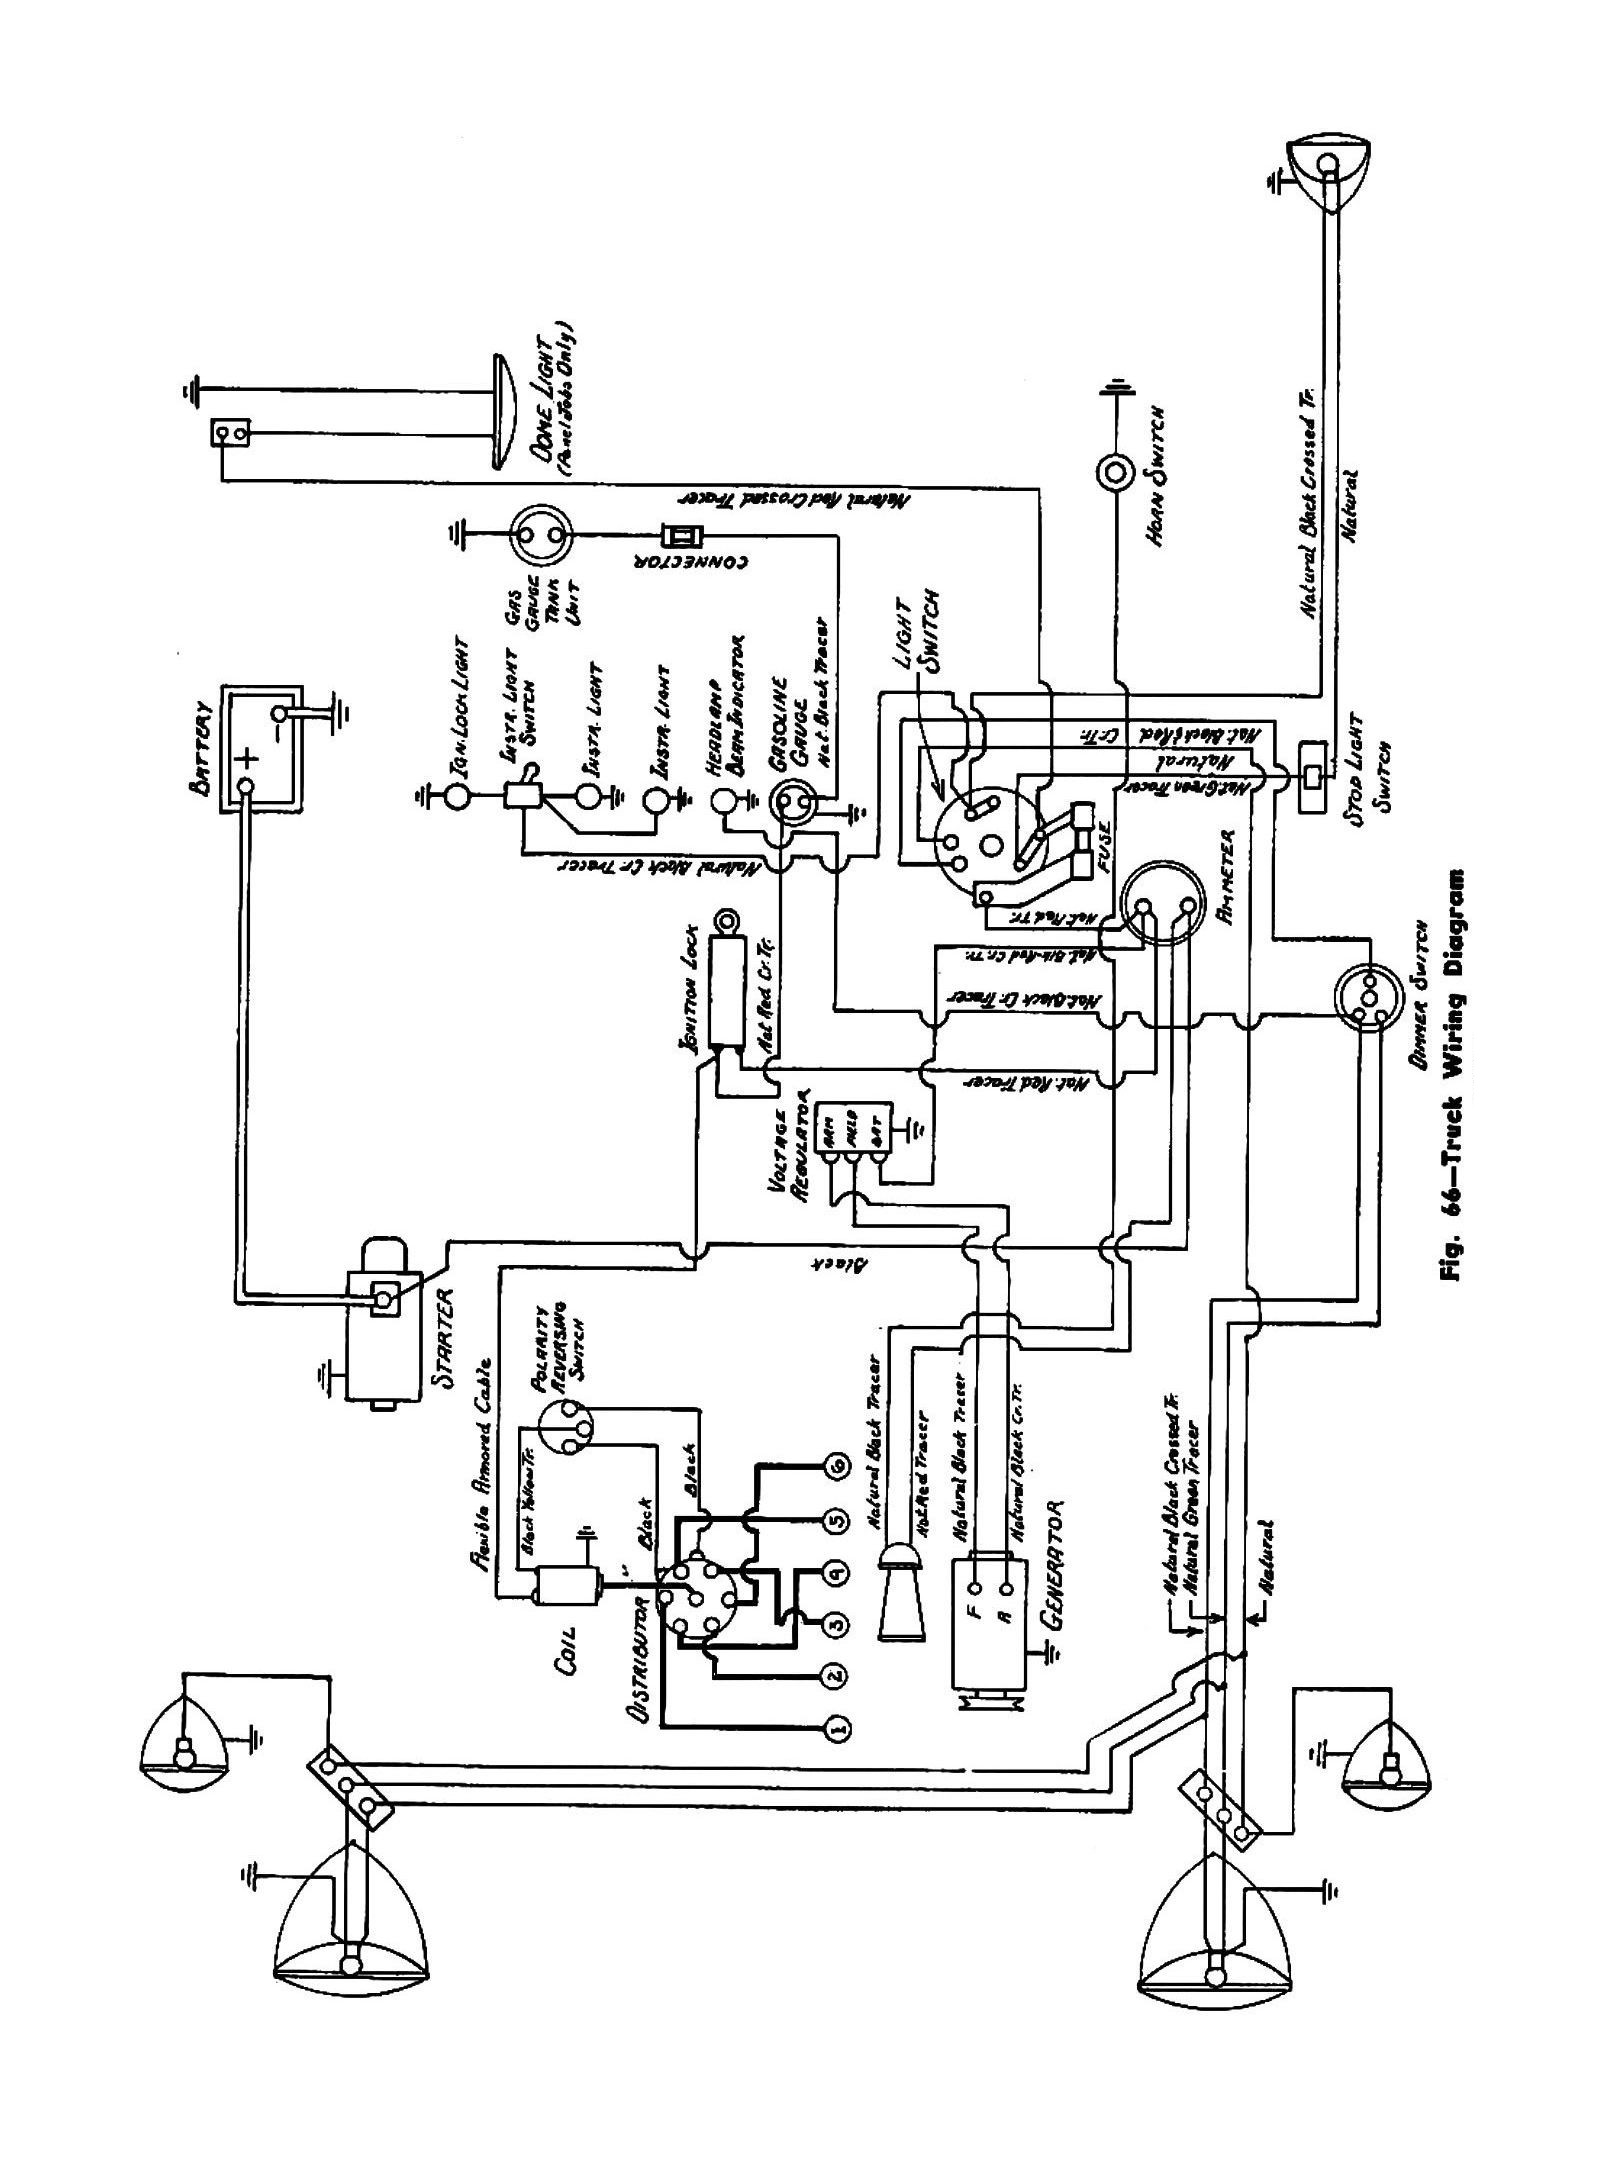 45truck truck wiring diagram 1986 chevy truck wiring diagram \u2022 free wiring  at gsmx.co